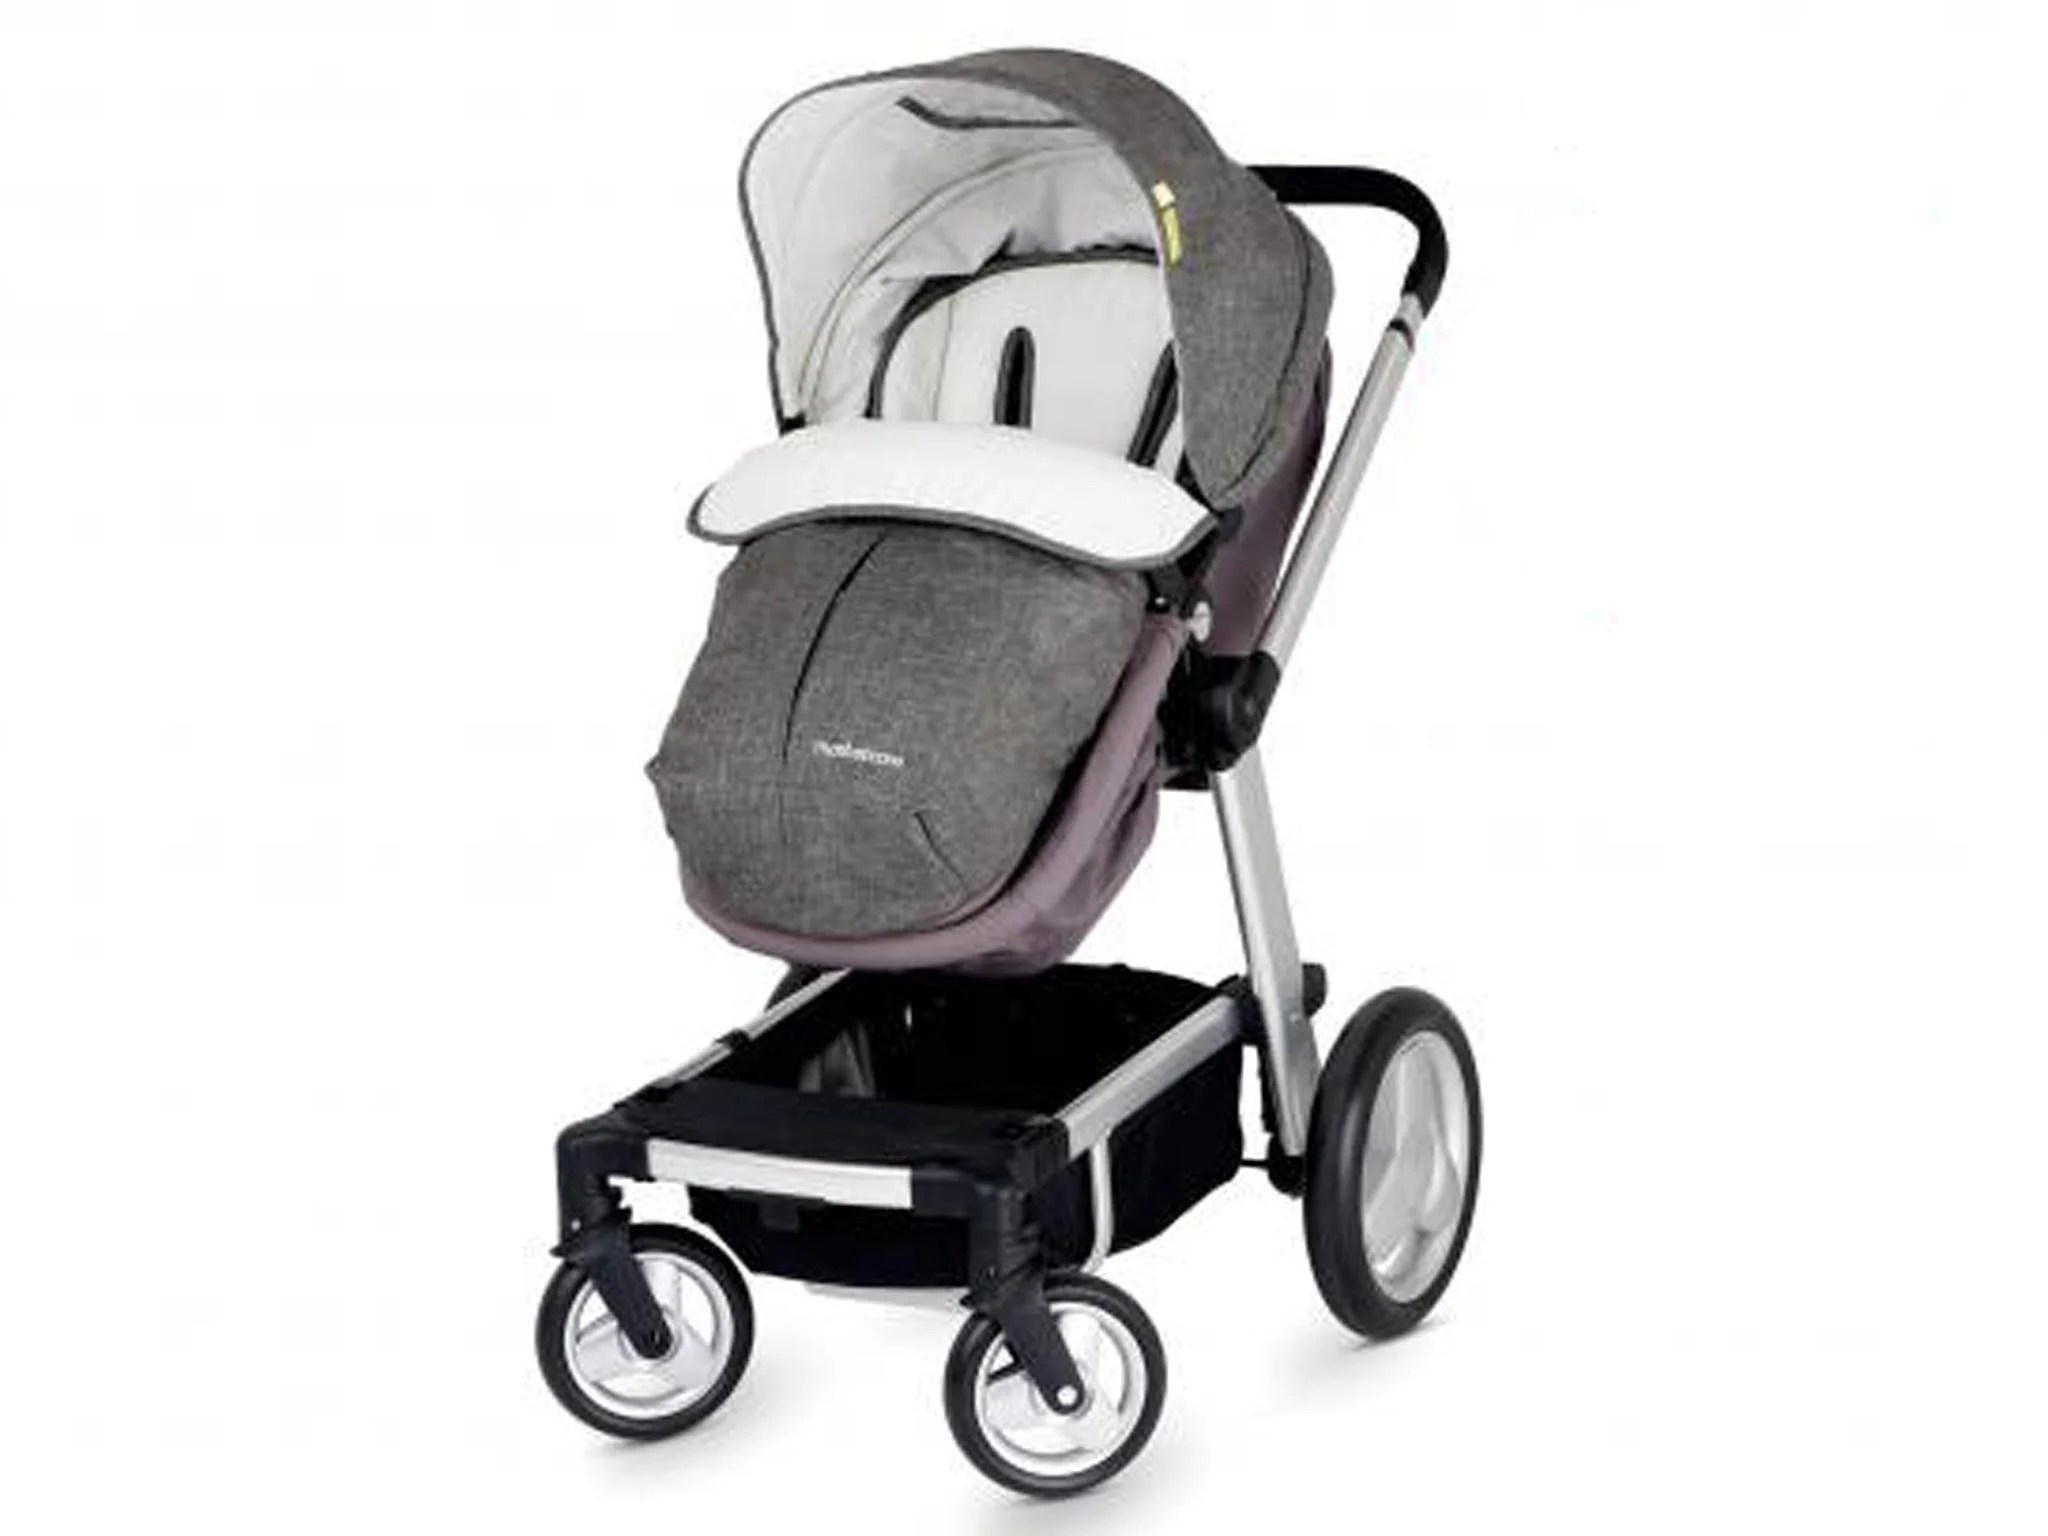 Baby Pram Designer Pushchairs Buying Guide What To Consider Before You Invest